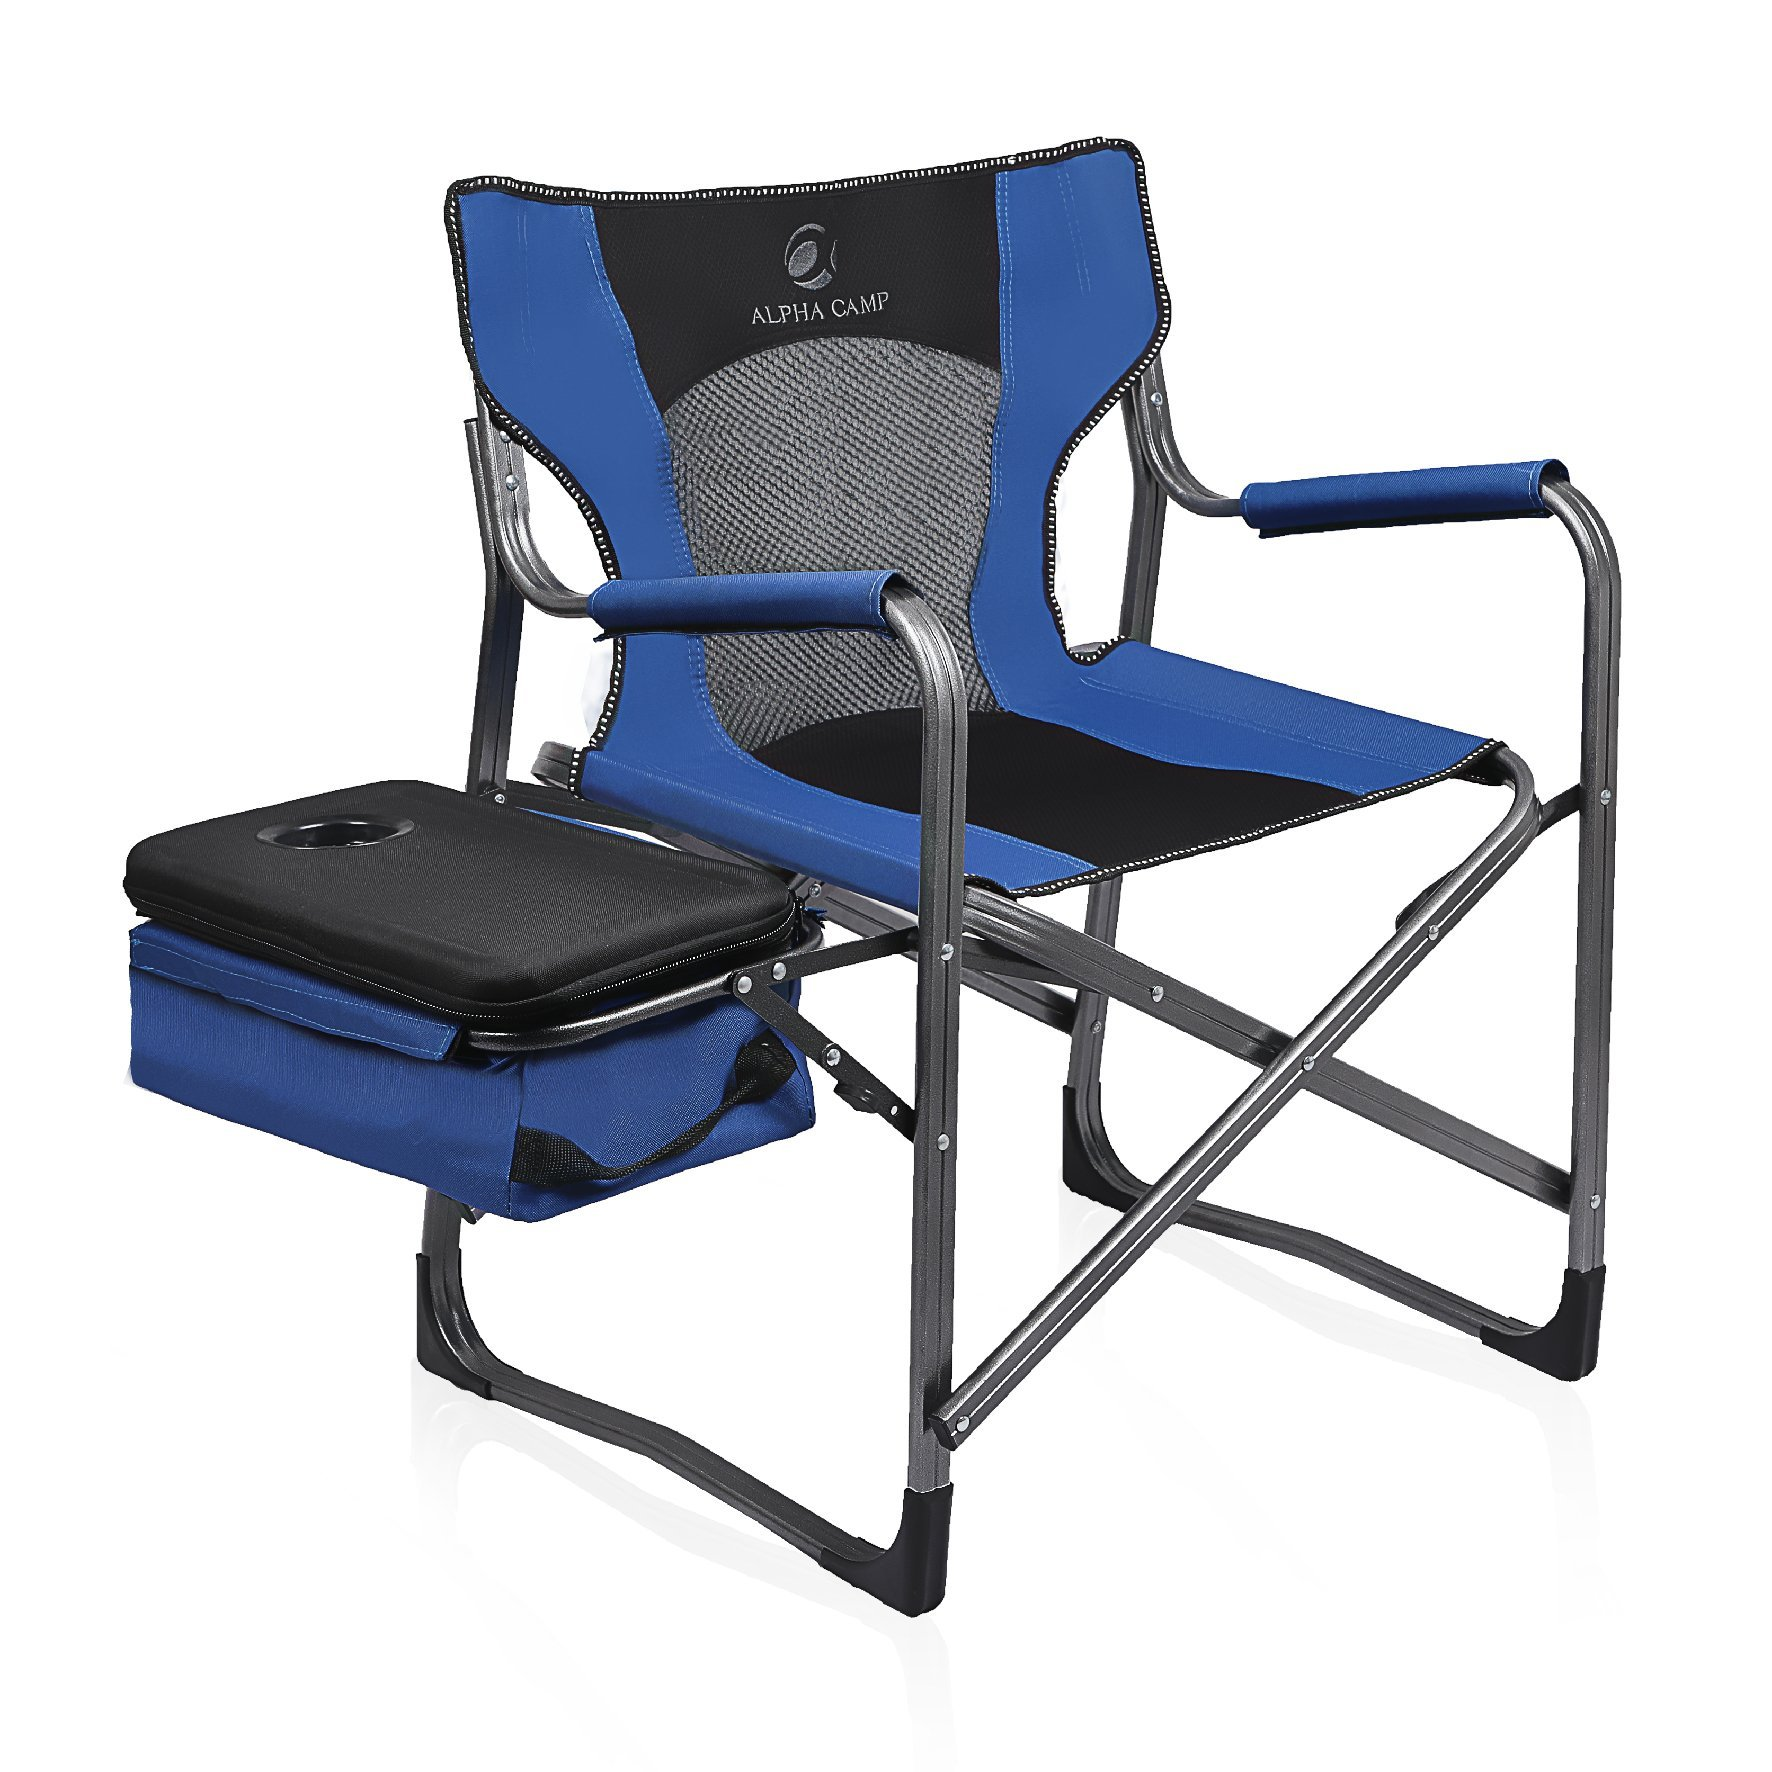 ALPHA CAMP Folding Camping Chair Director's Cooler Chair with Mesh Back